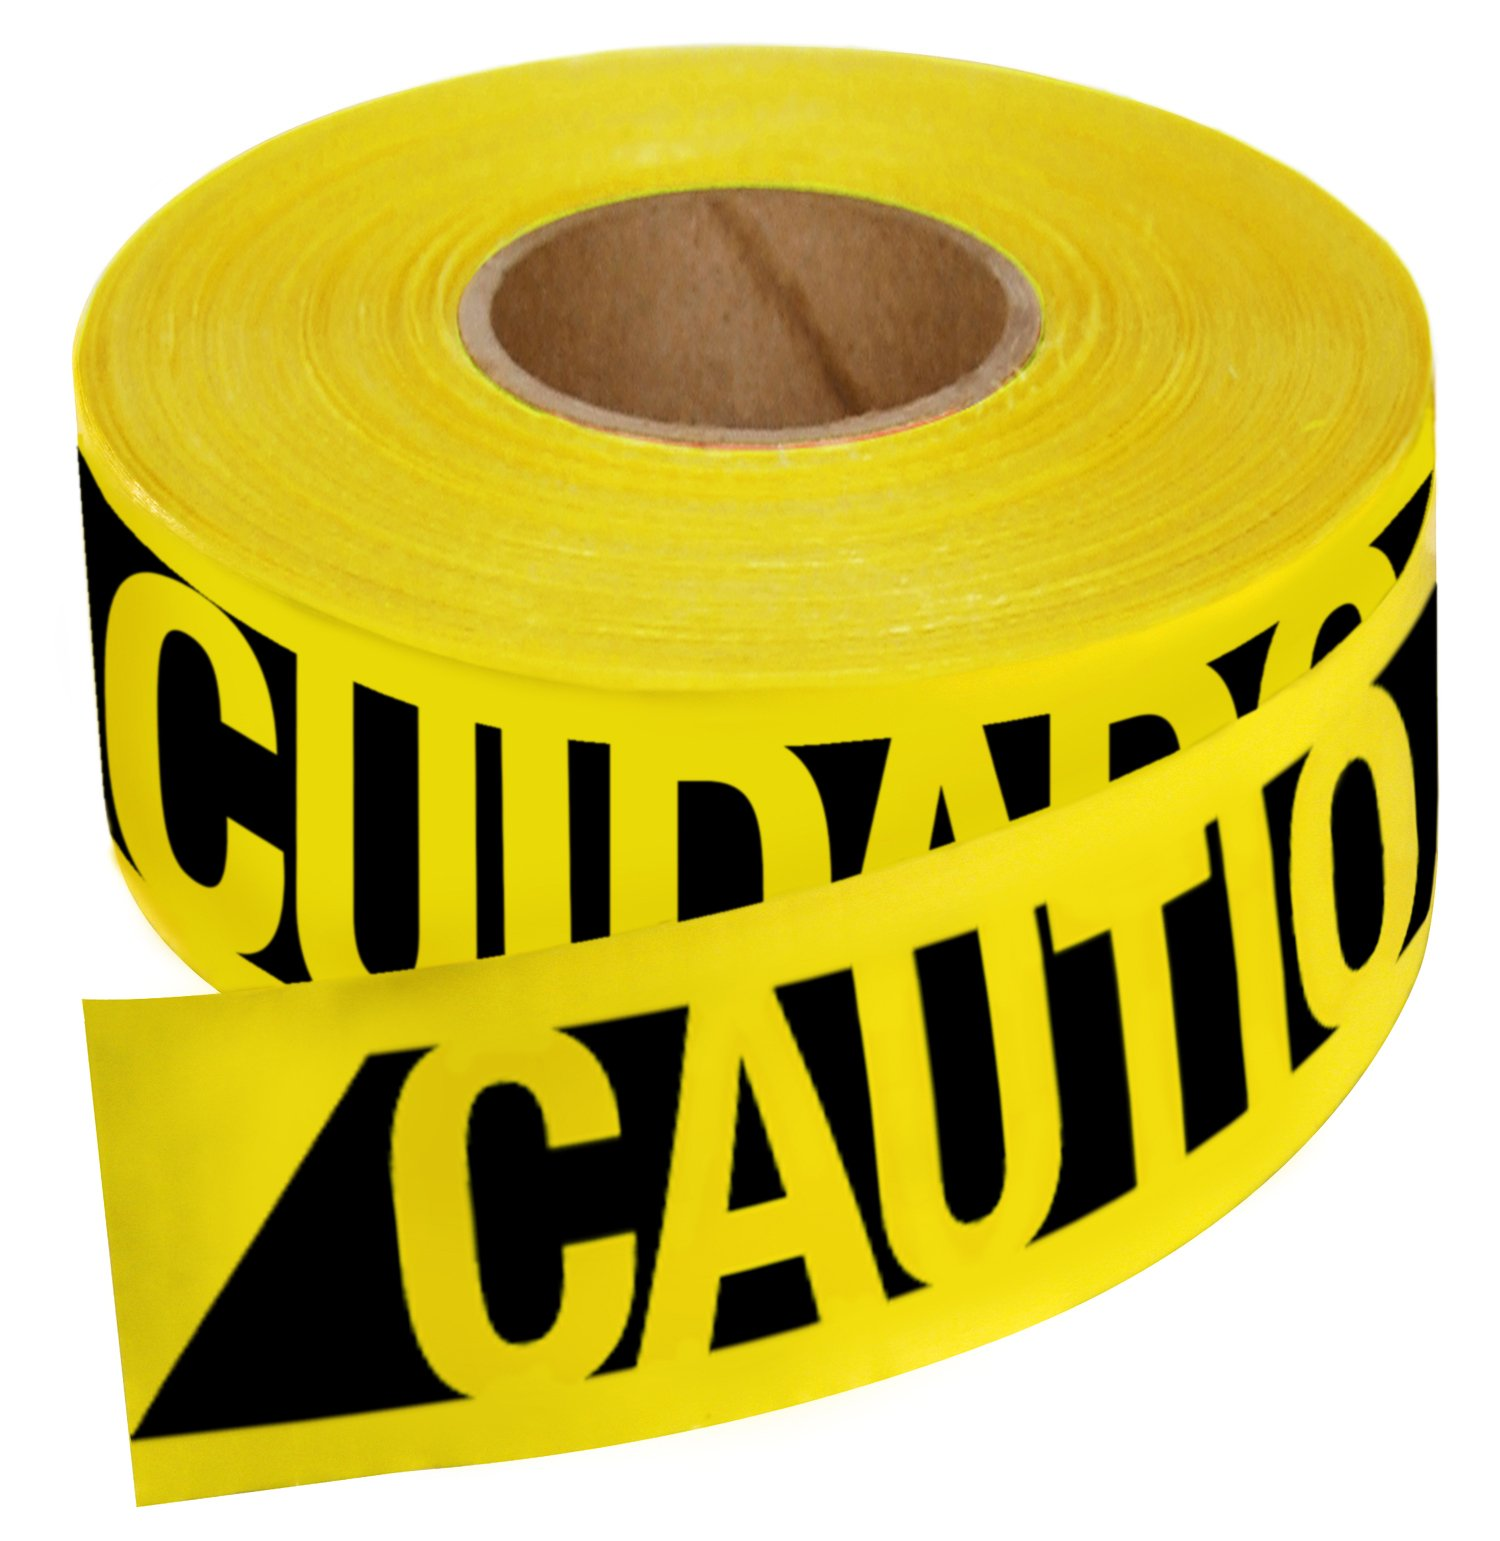 Empire Level 76-0600 Reinforced Construction Grade Caution Tape, 500 Feet by 3-Inch by Empire Level